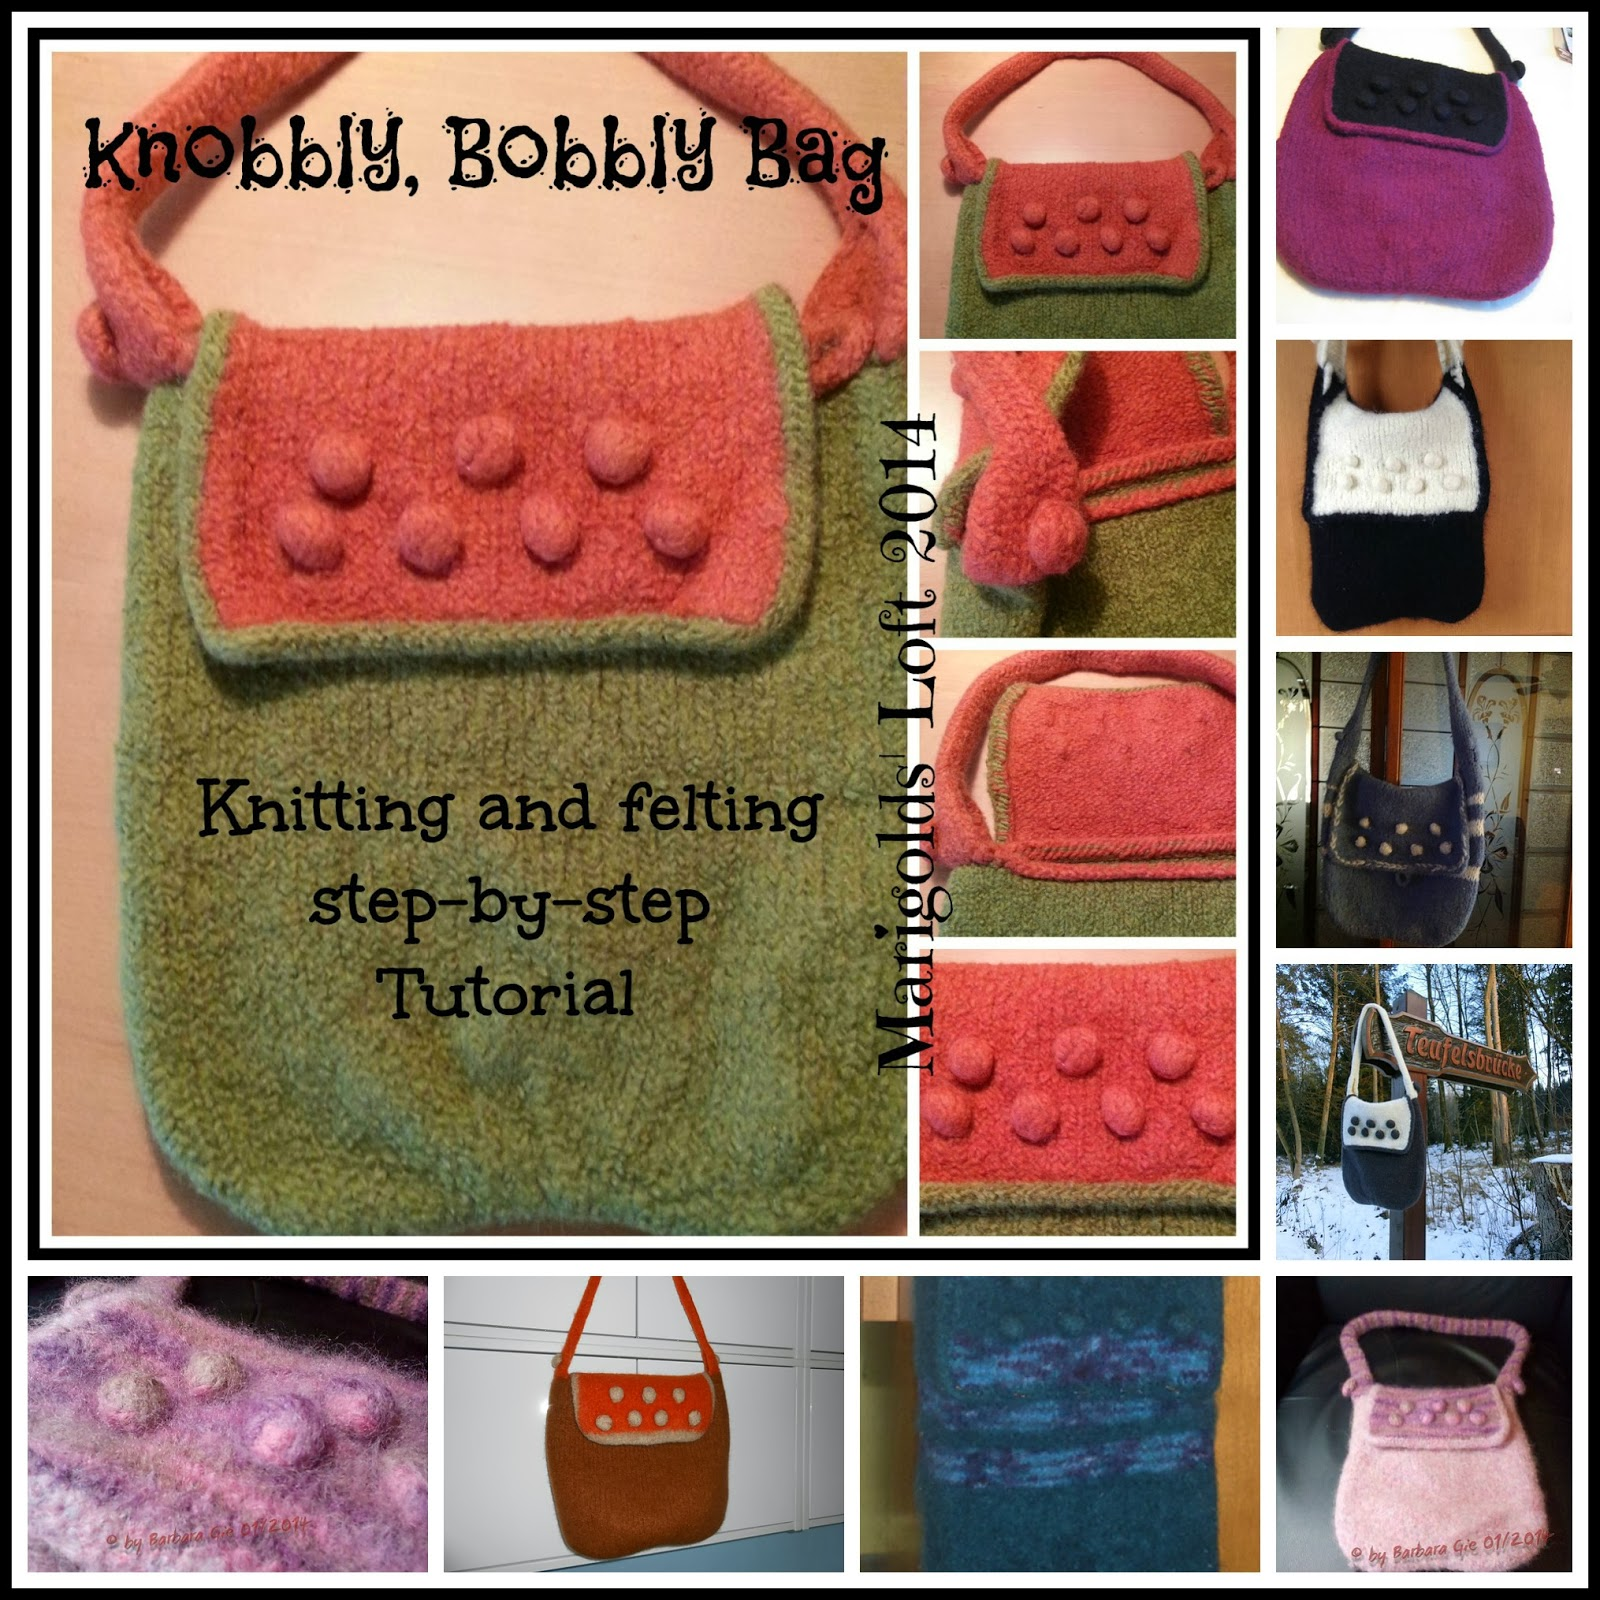 knobbly, bobbly bag